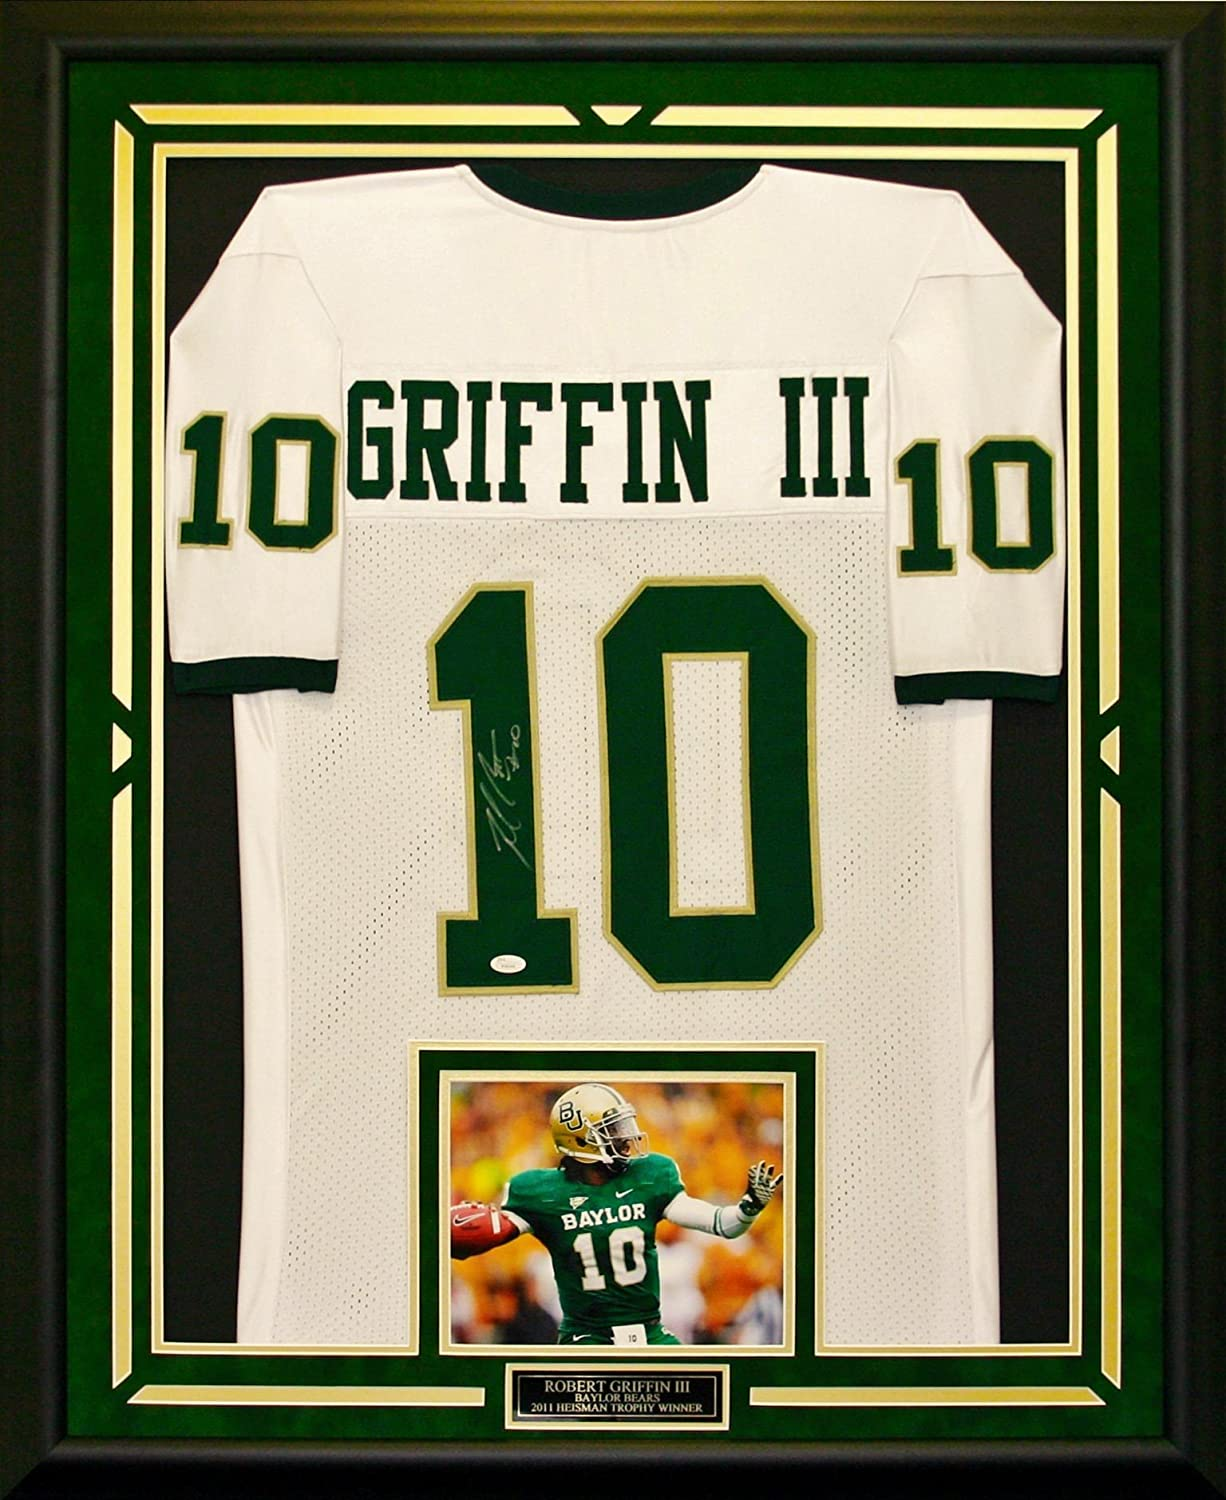 Robert Griffin III Autographed & Framed Baylor Jersey